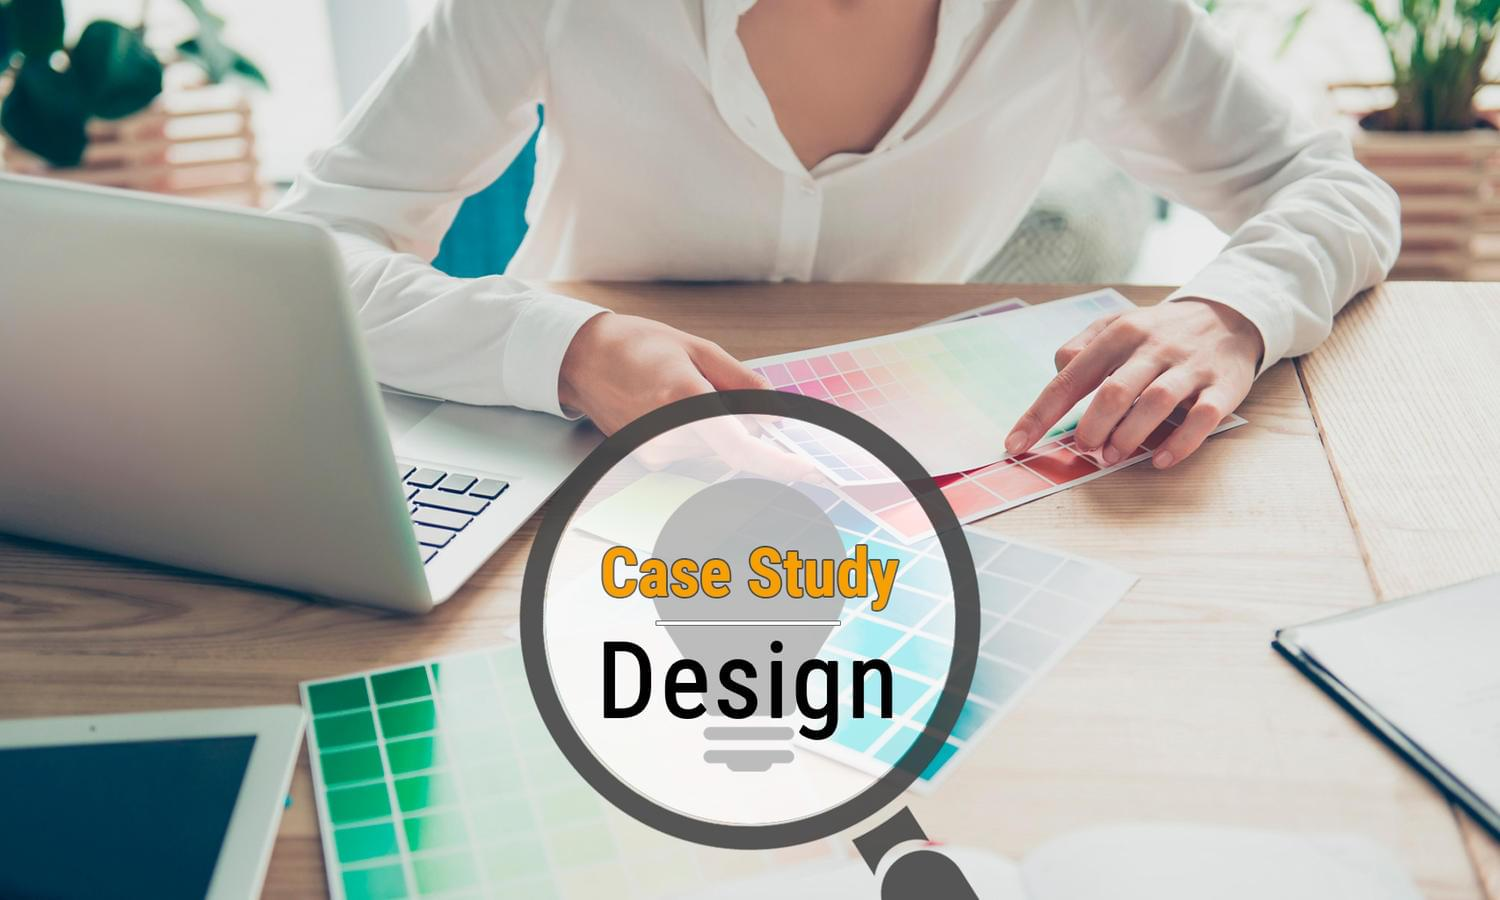 Case Study Design by madridnyc - 111546